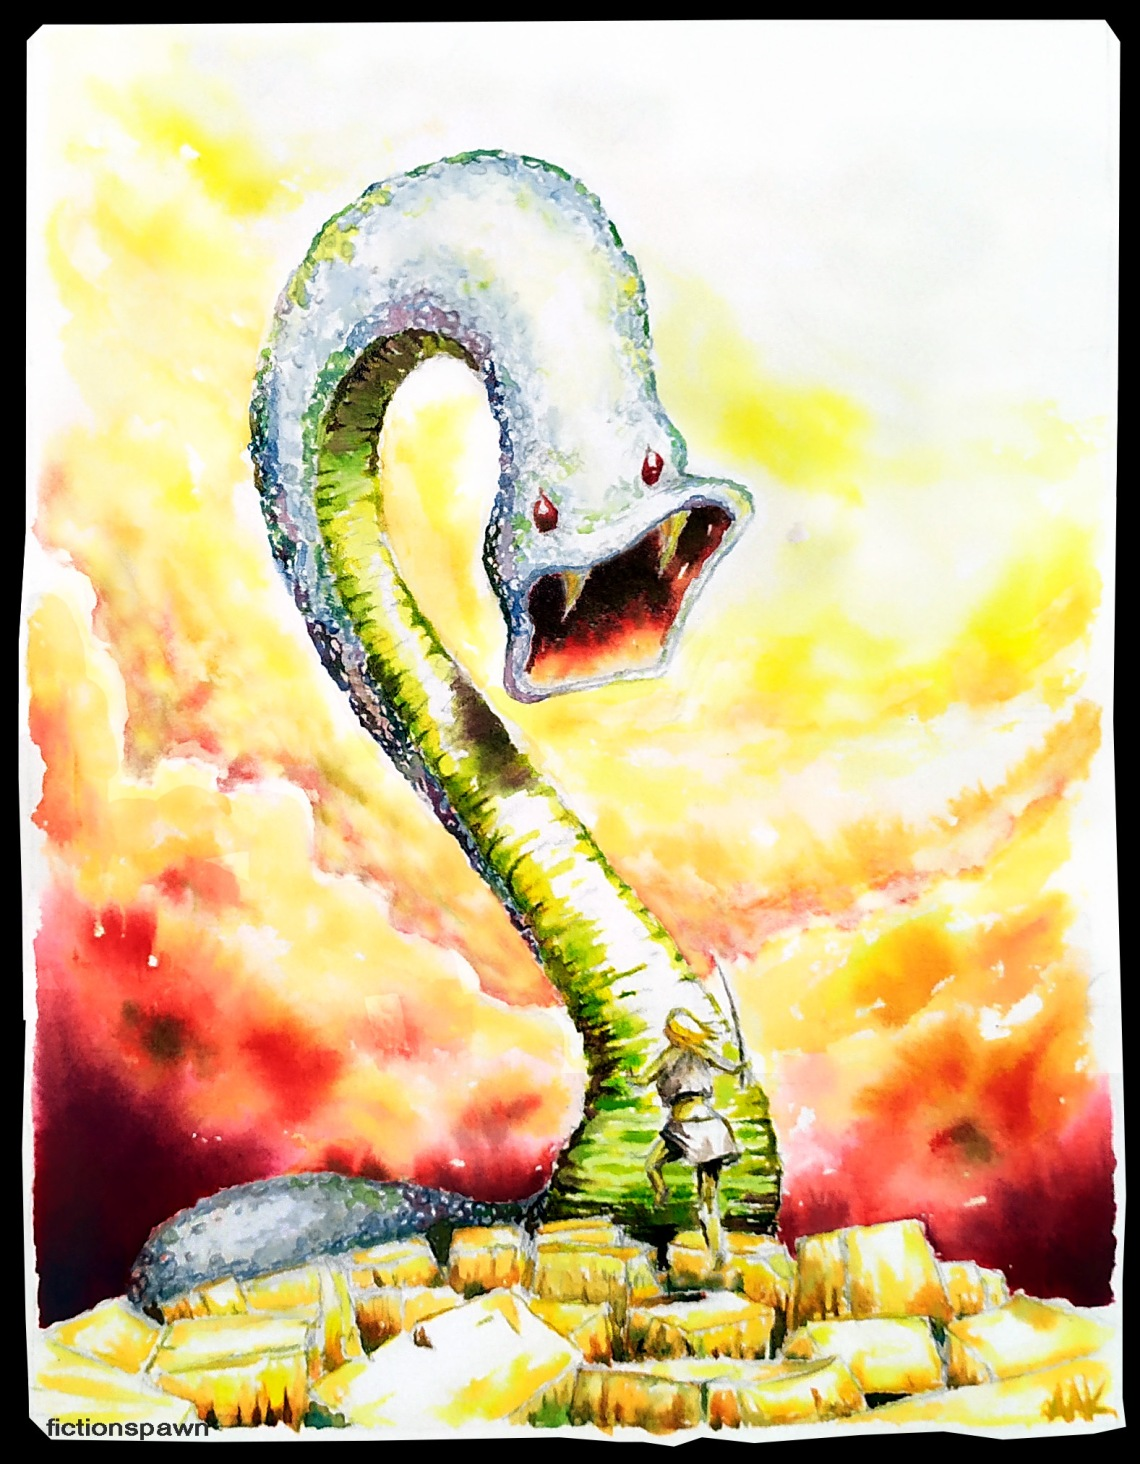 Snake worm monster Aak fictionspawn